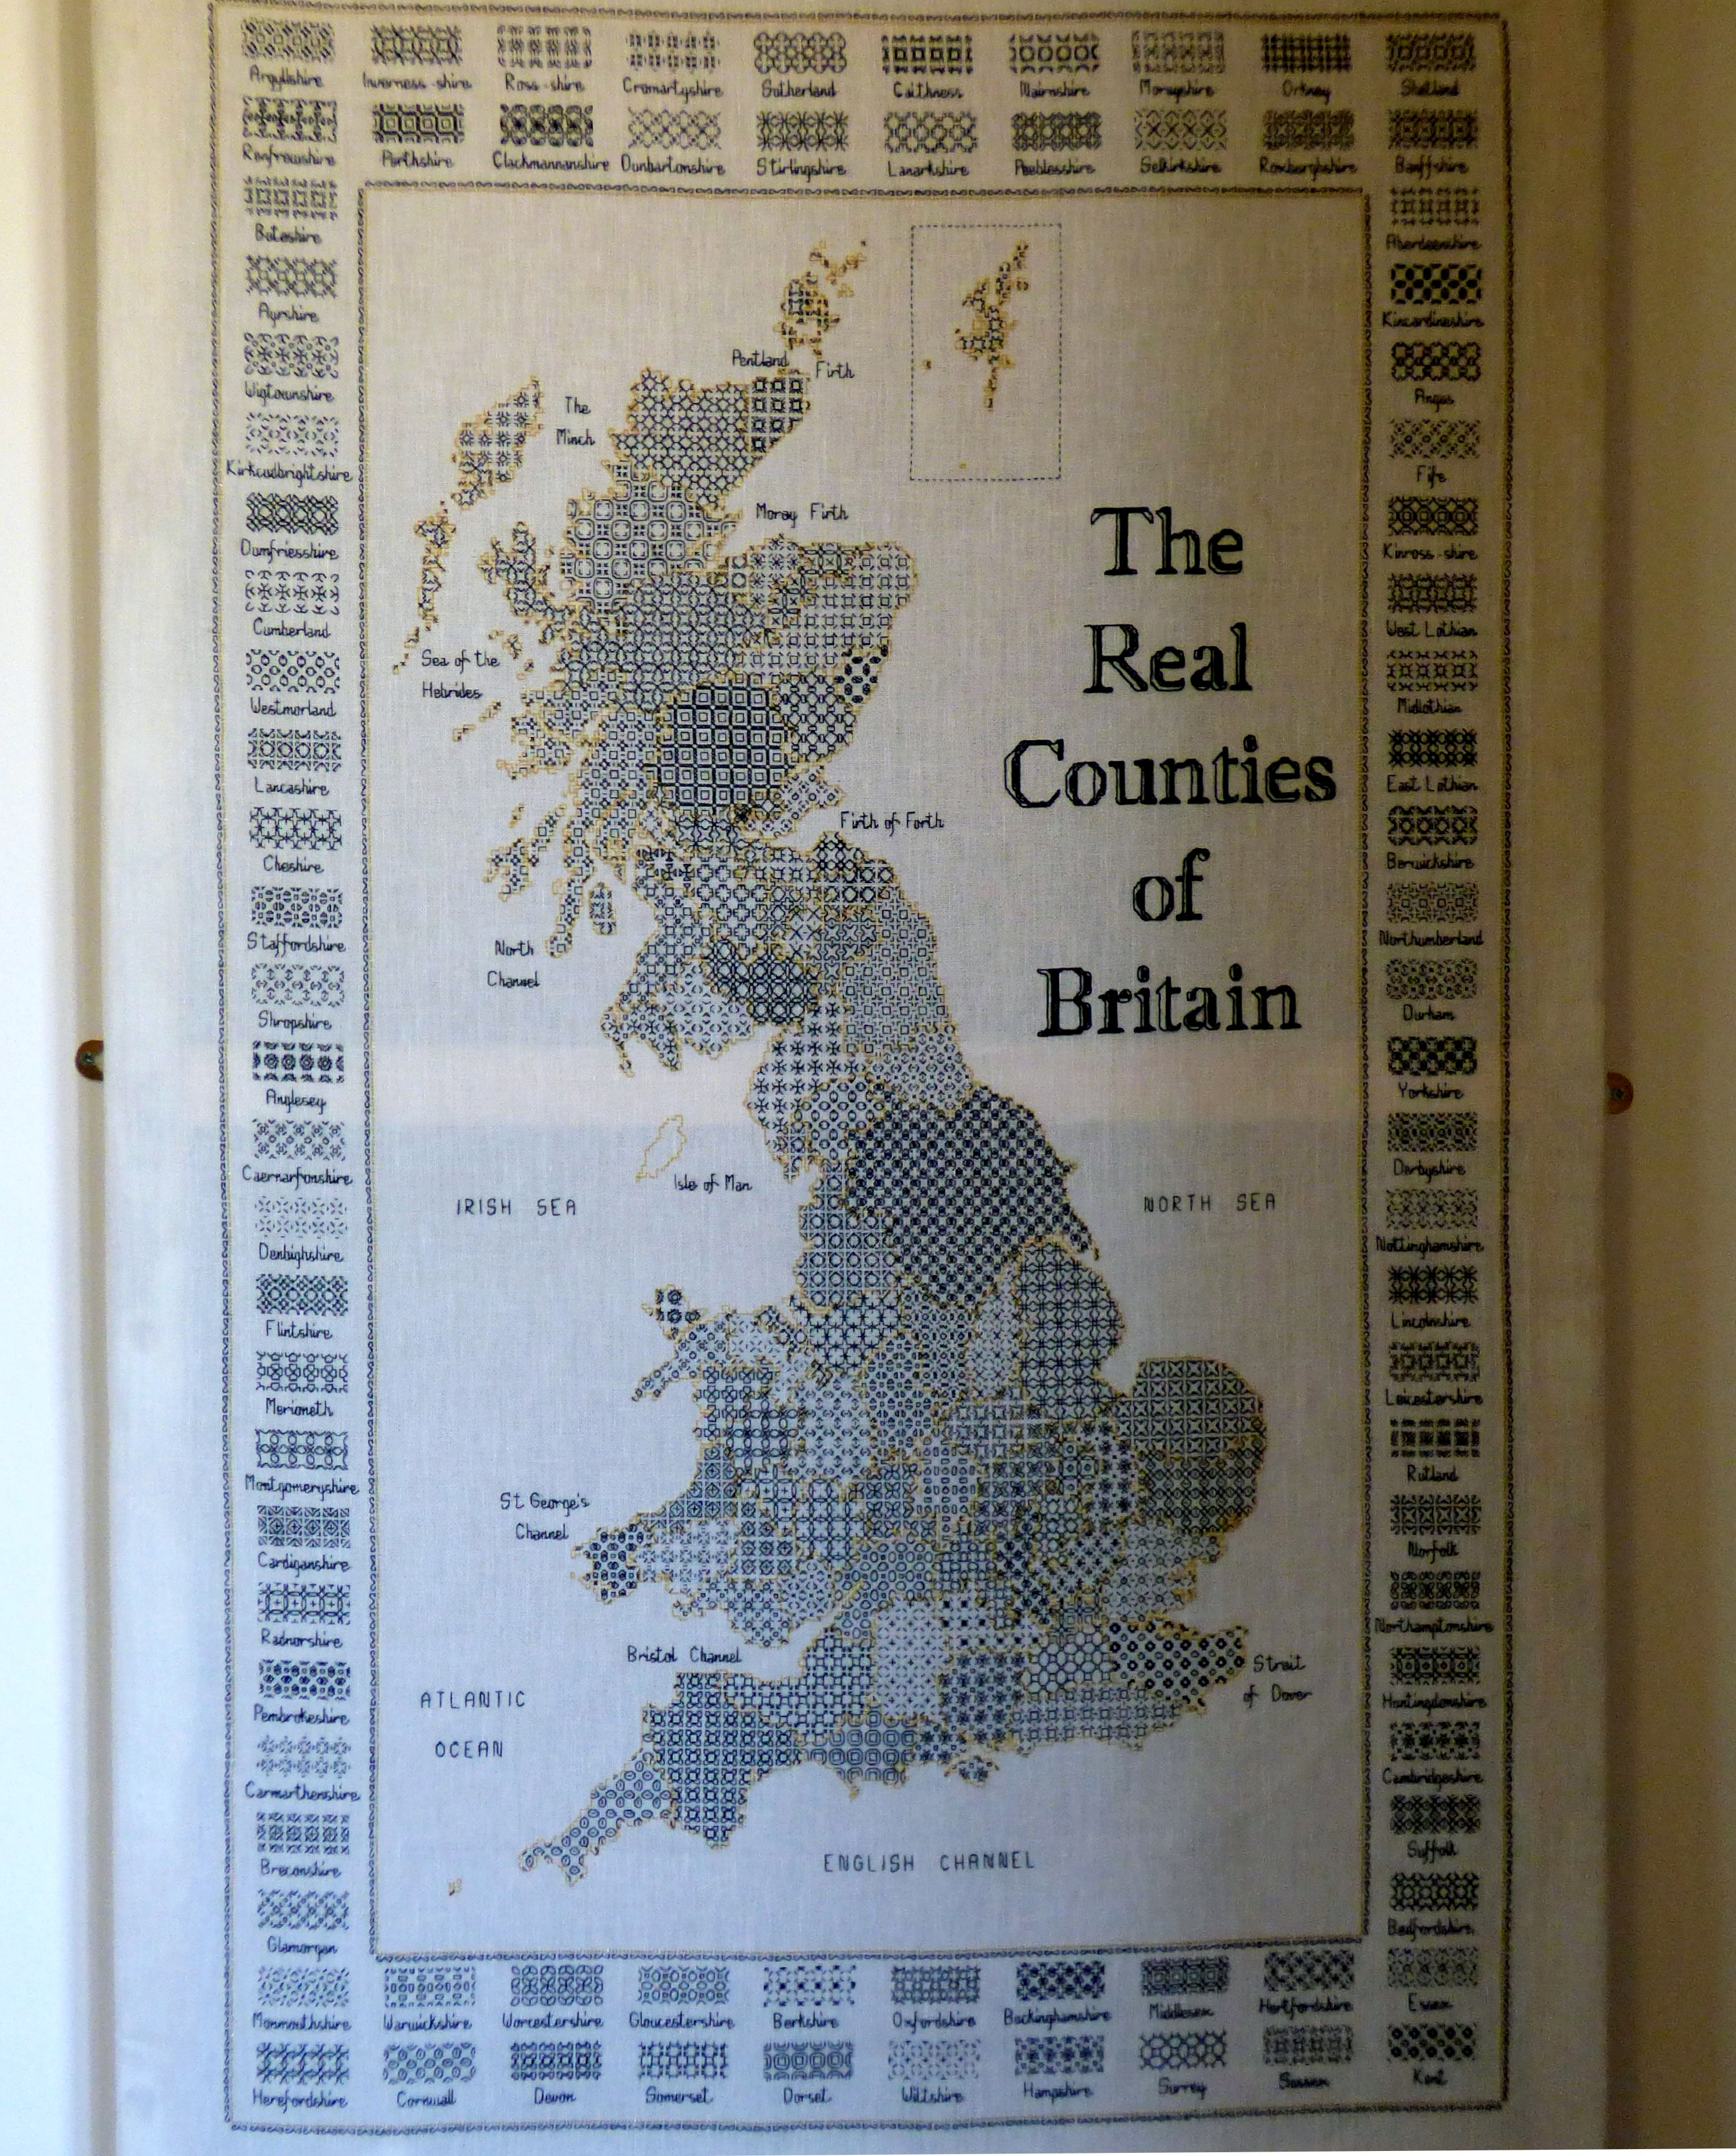 THE REAL COUNTIES OF GREAT BRITAIN by Christine Bourne, blackwork